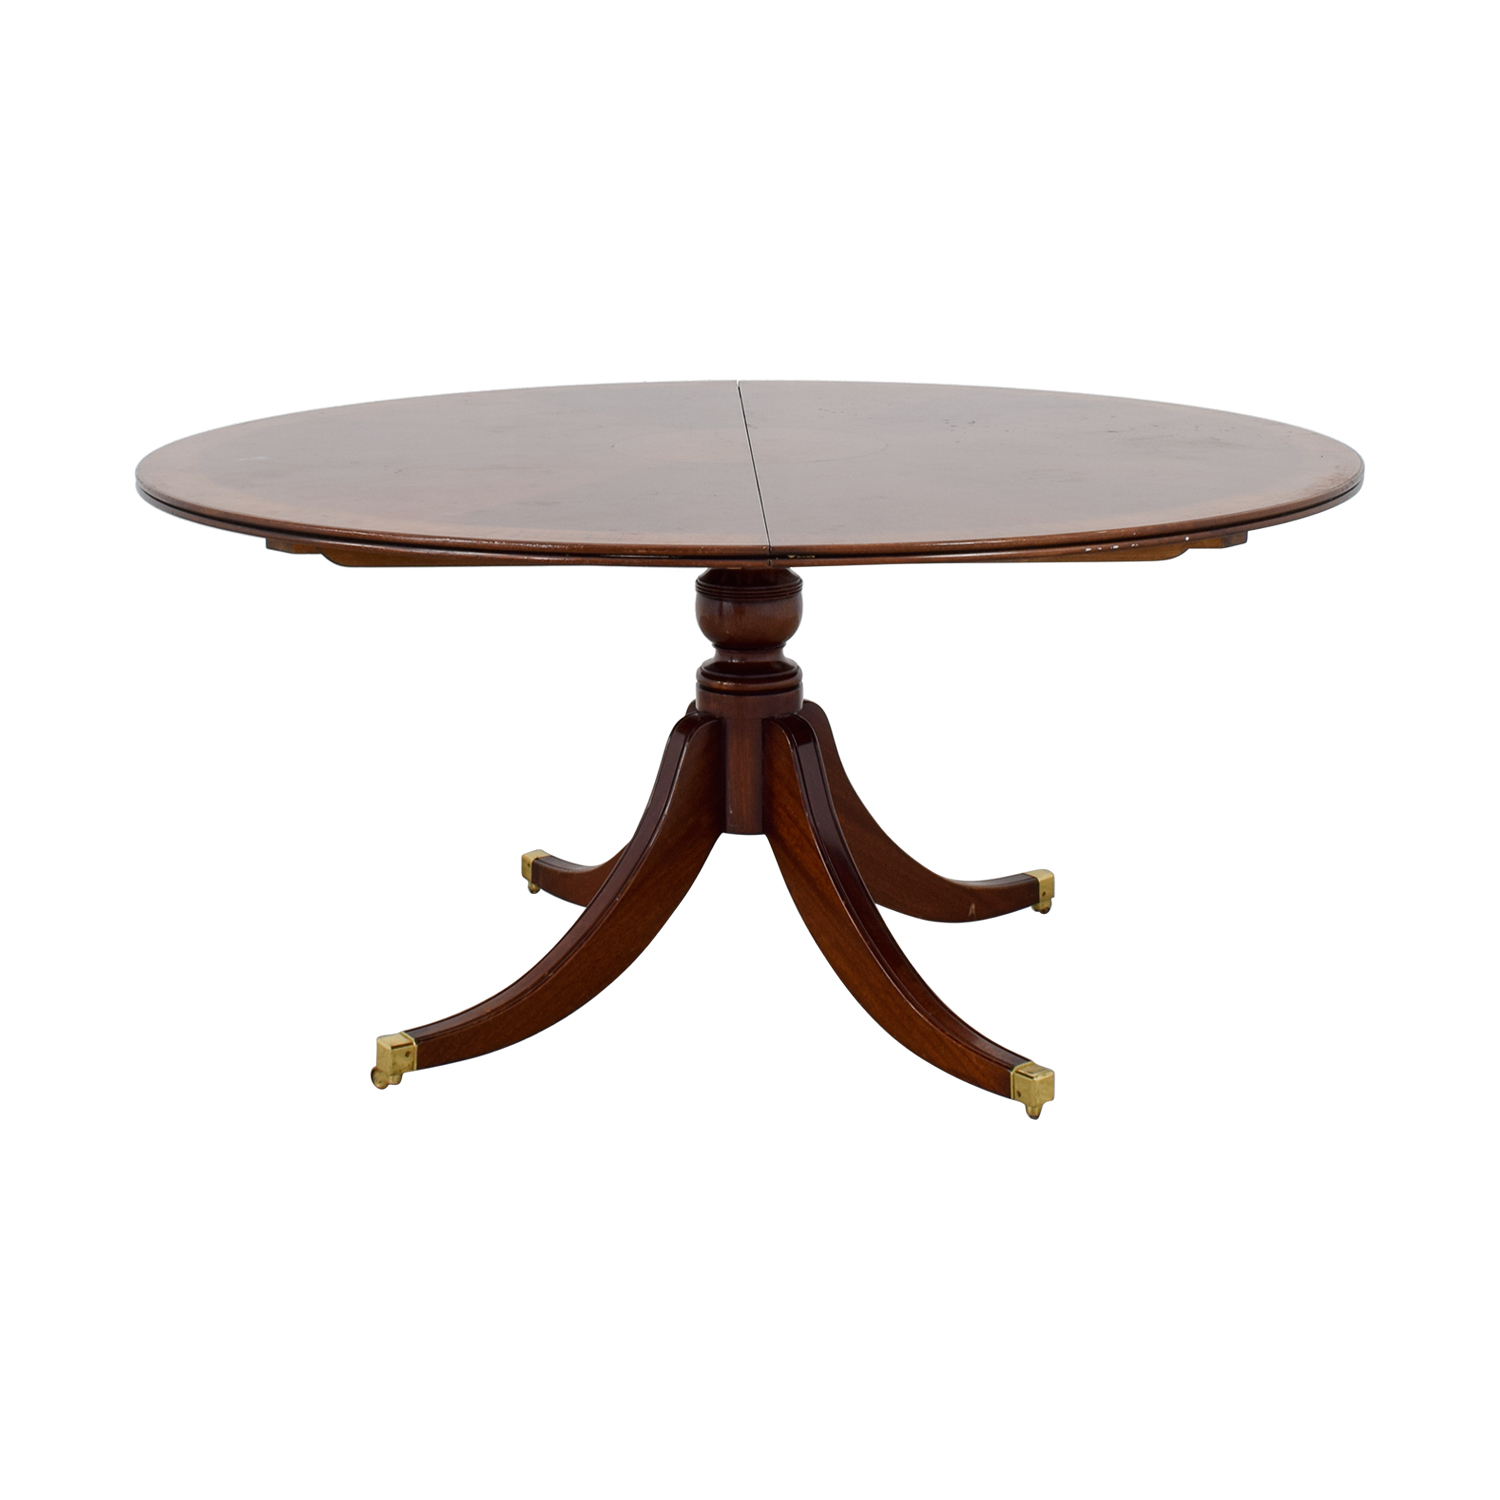 buy Scully & Scully Mahogany Round Dining Table with Extension Scully & Scully Sofas